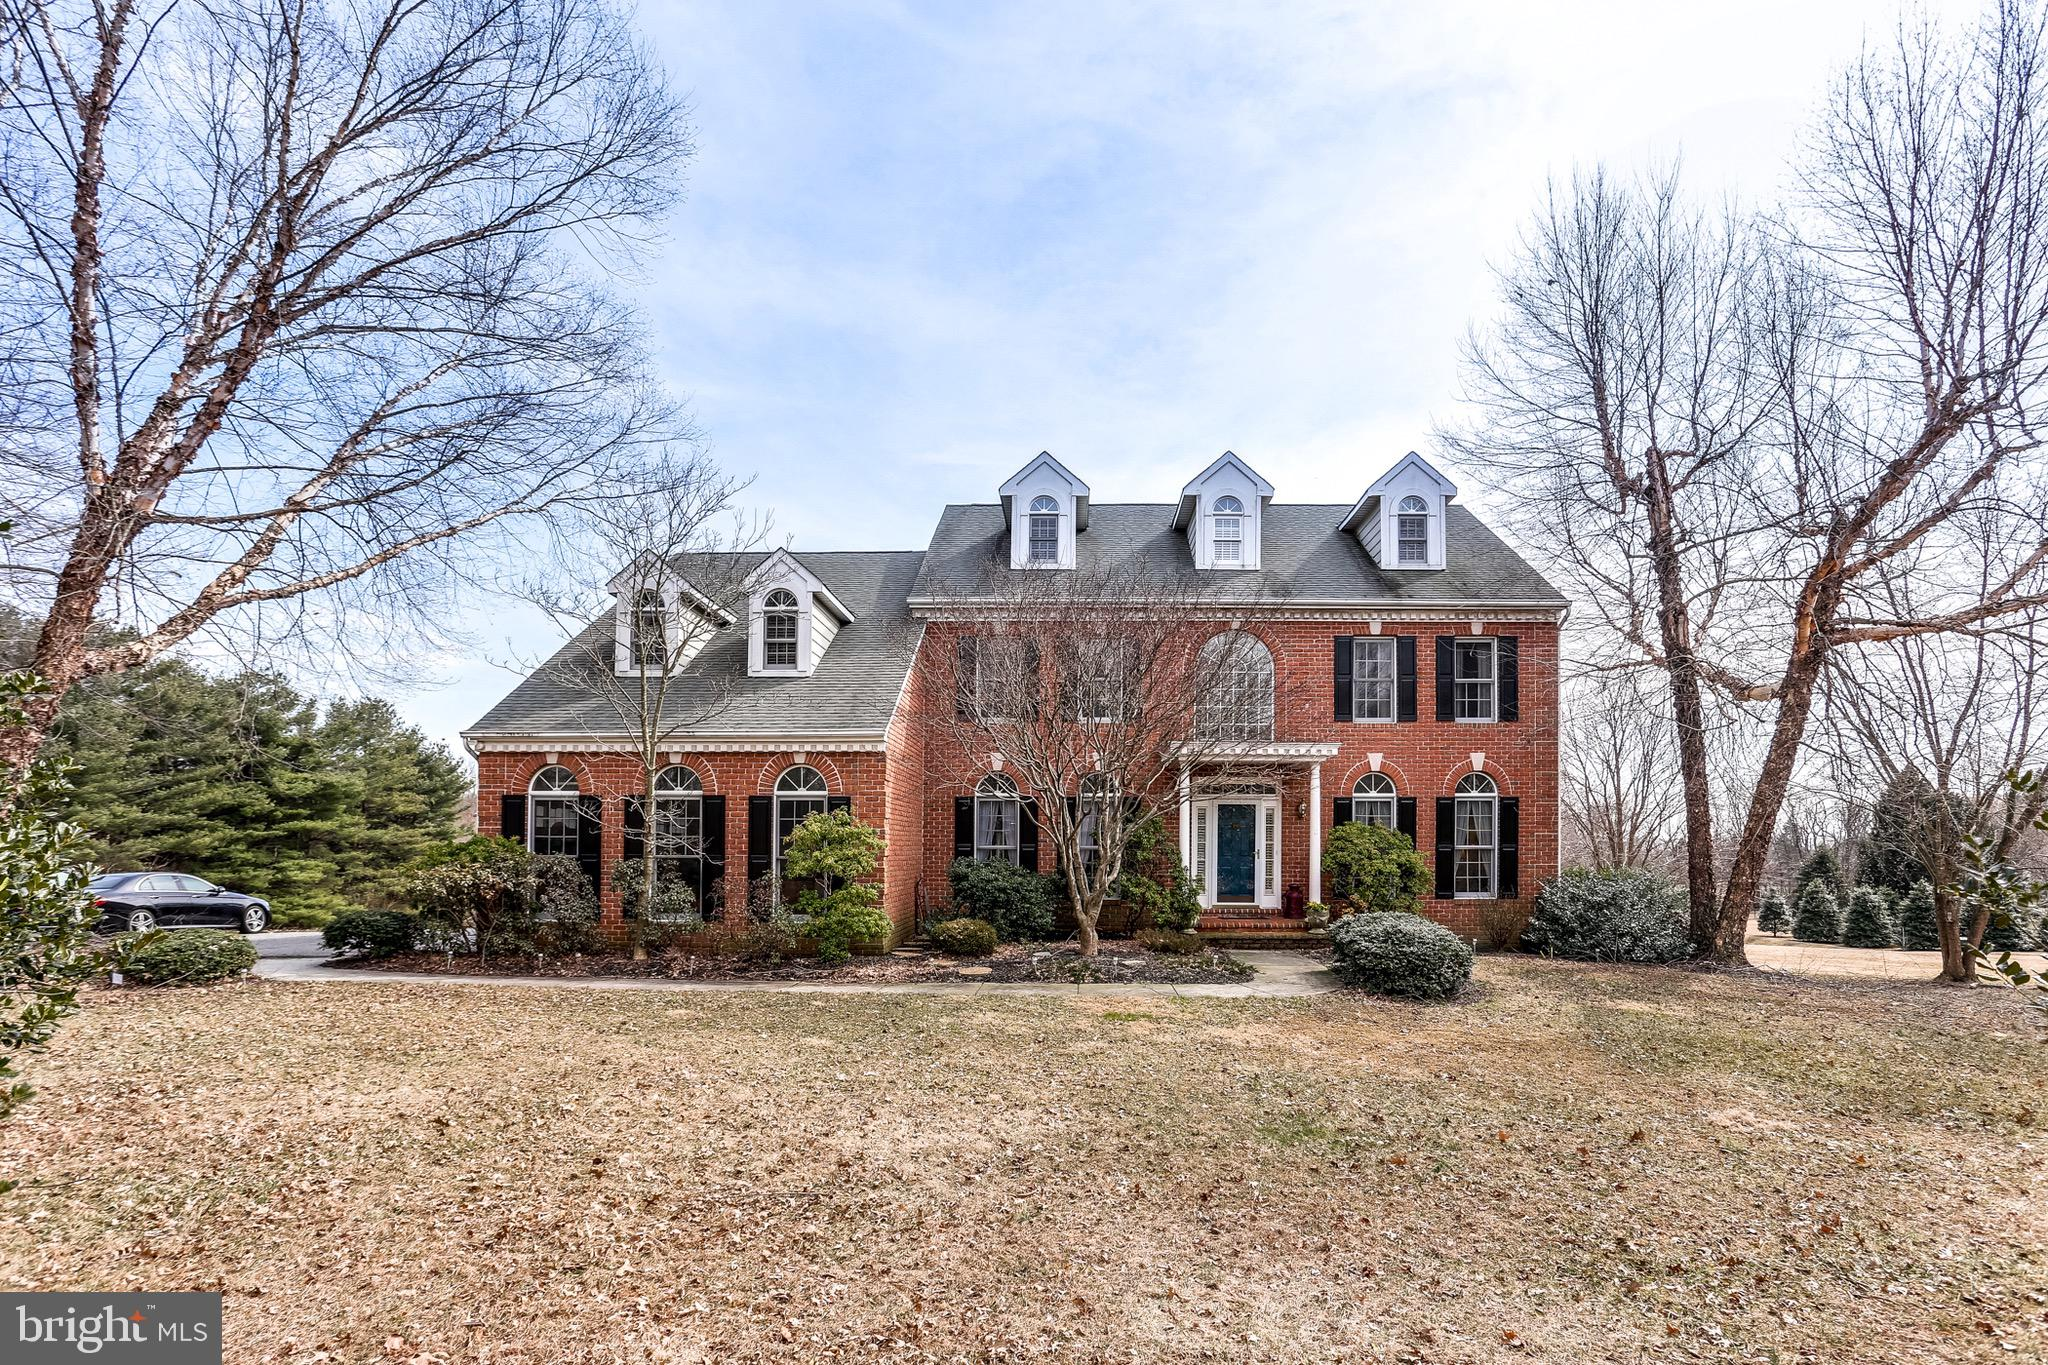 3207 VANCE ROAD, MONKTON, MD 21111